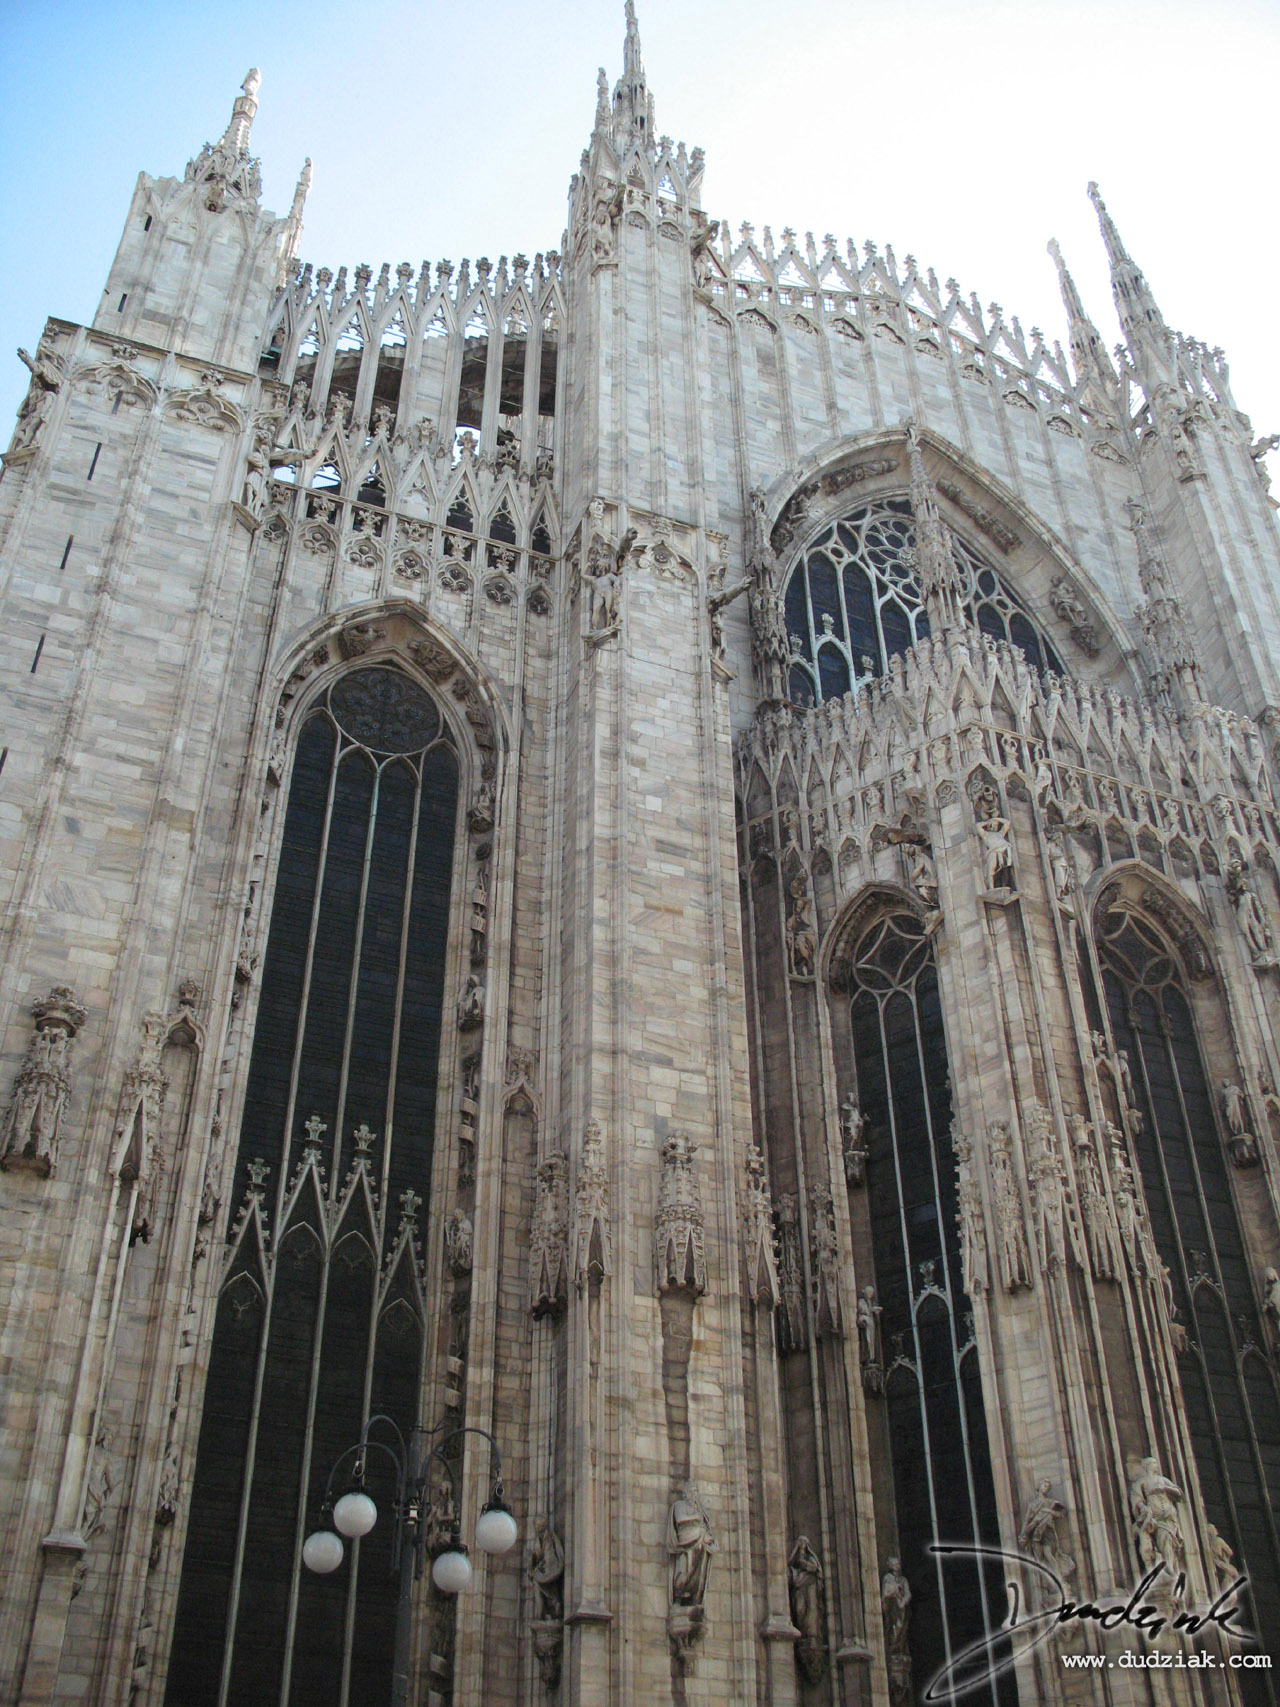 Picture of the Cahtedral of Milan (Il Duomo) and its amazing gothic architecture rear view.  The main staind-glass window can be seen.